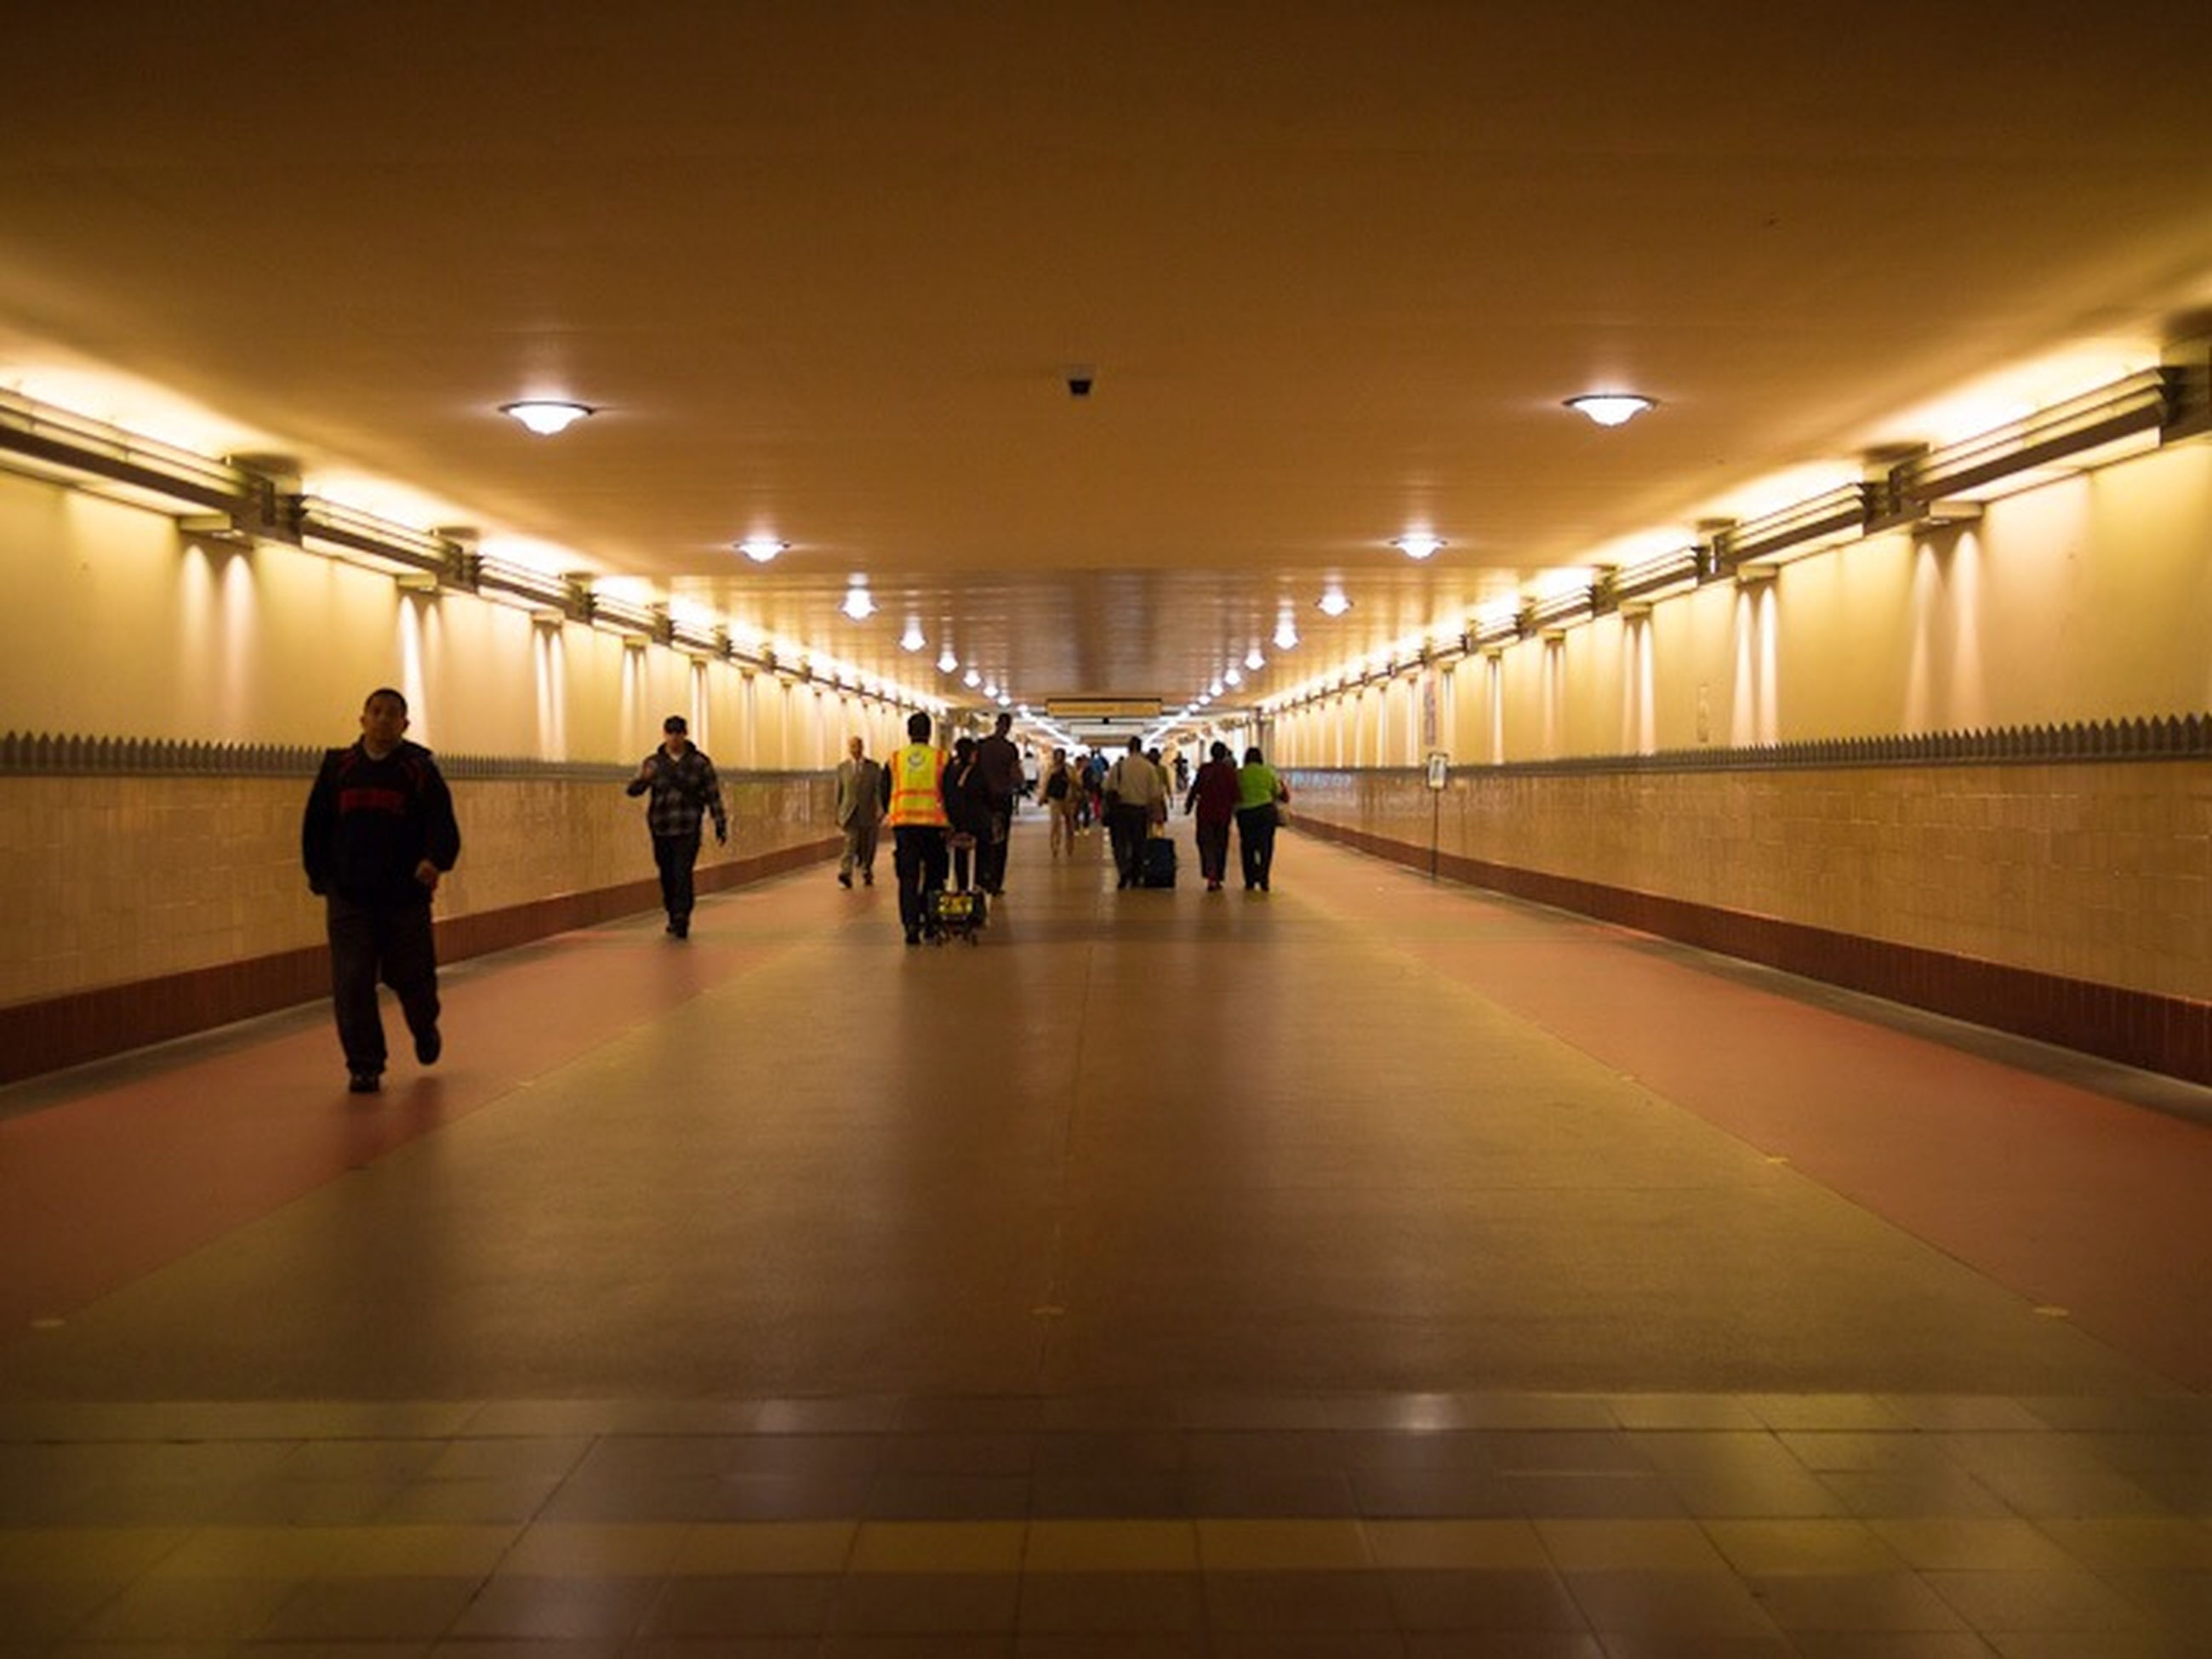 indoors, illuminated, men, ceiling, subway station, lifestyles, transportation, railroad station, subway, walking, airport, person, flooring, railroad station platform, large group of people, architecture, lighting equipment, built structure, public transportation